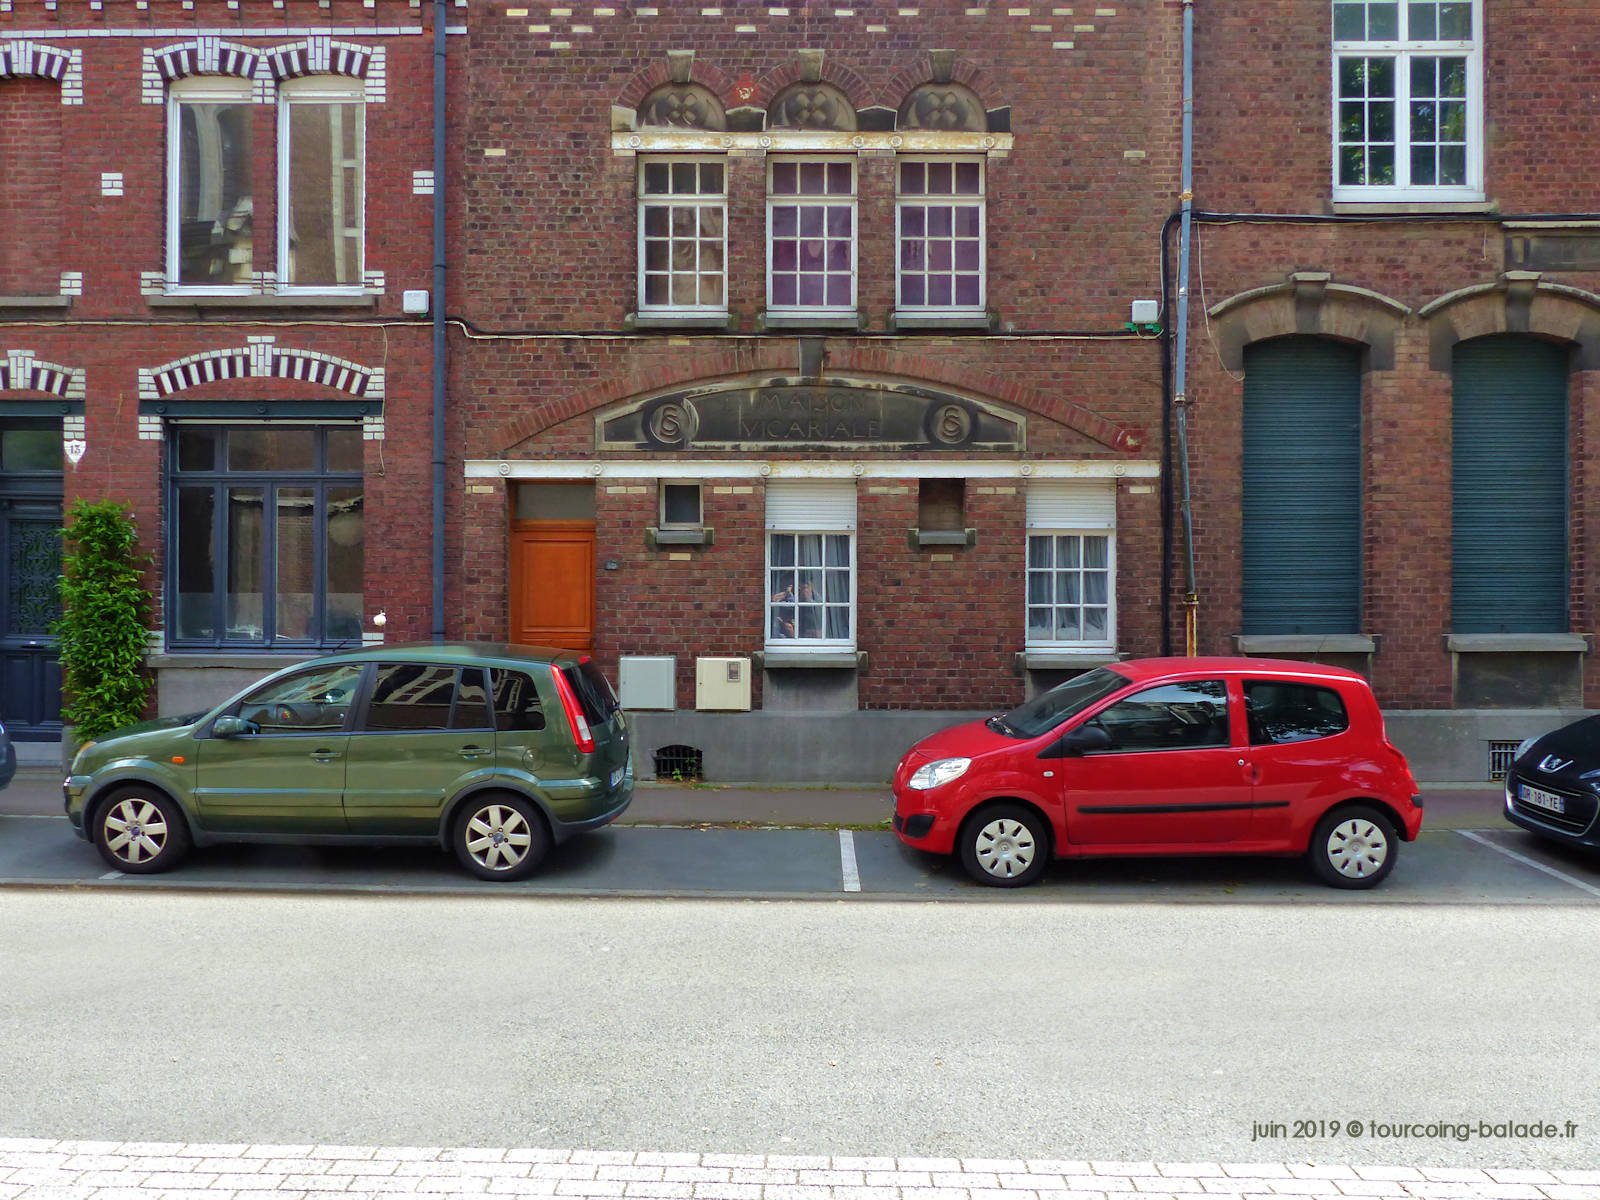 Ancienne Maison Vicariale, Tourcoing 2019